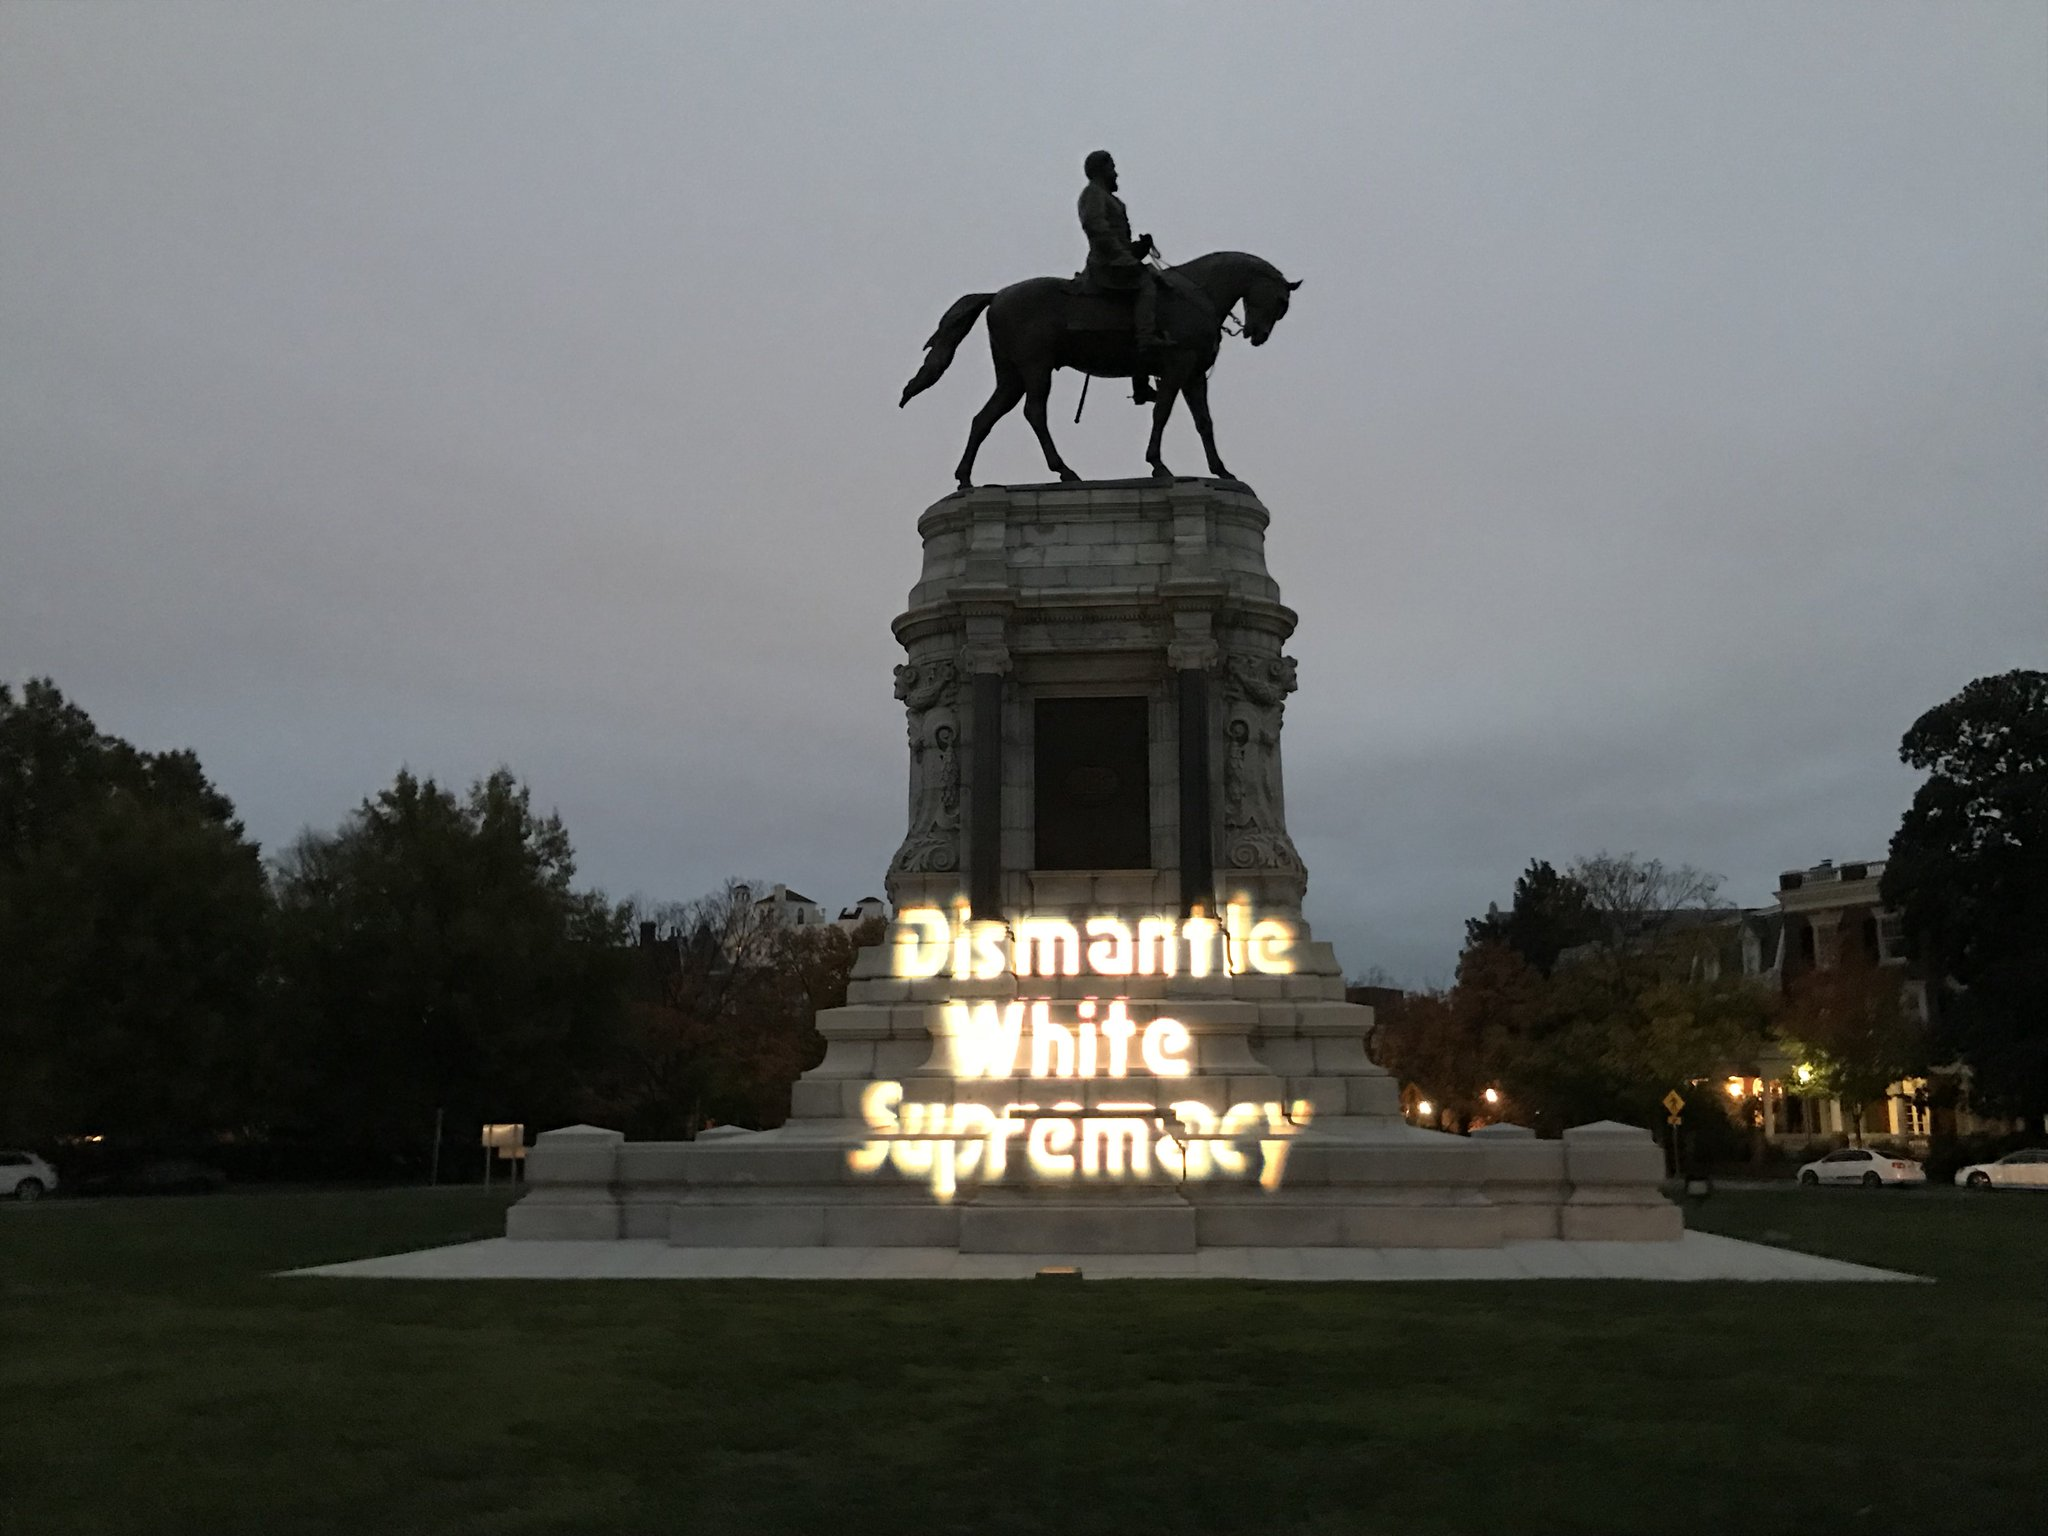 Maryland_Solidarity_Brigade_Projection_-_Dismantle_White_Supremacy_on_General_Lee_Statue_in_Richmond_VA_(Photos_curtesy_of_Richmond_DSA)_.jpeg